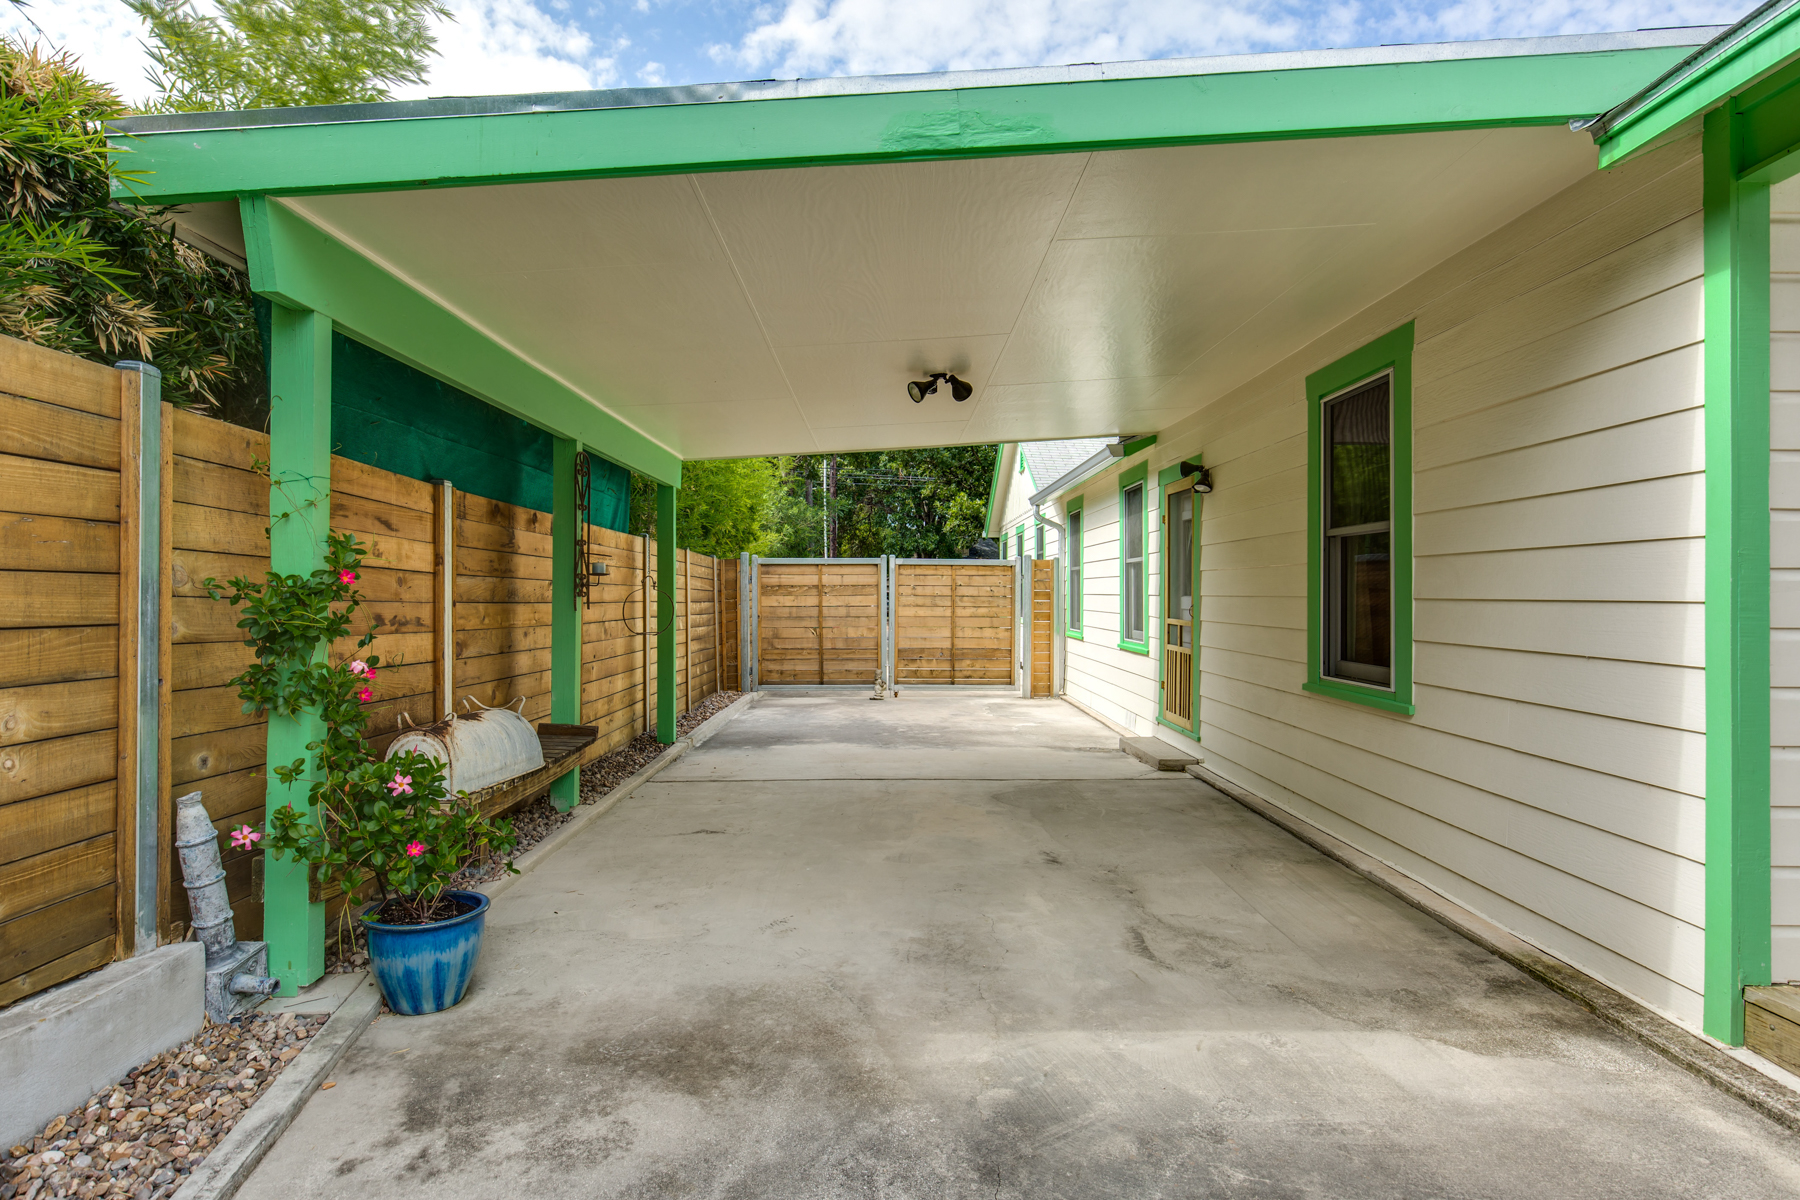 Additional photo for property listing at Charming Home in Alamo Heights 115 W Castano Ave San Antonio, Texas 78209 Estados Unidos